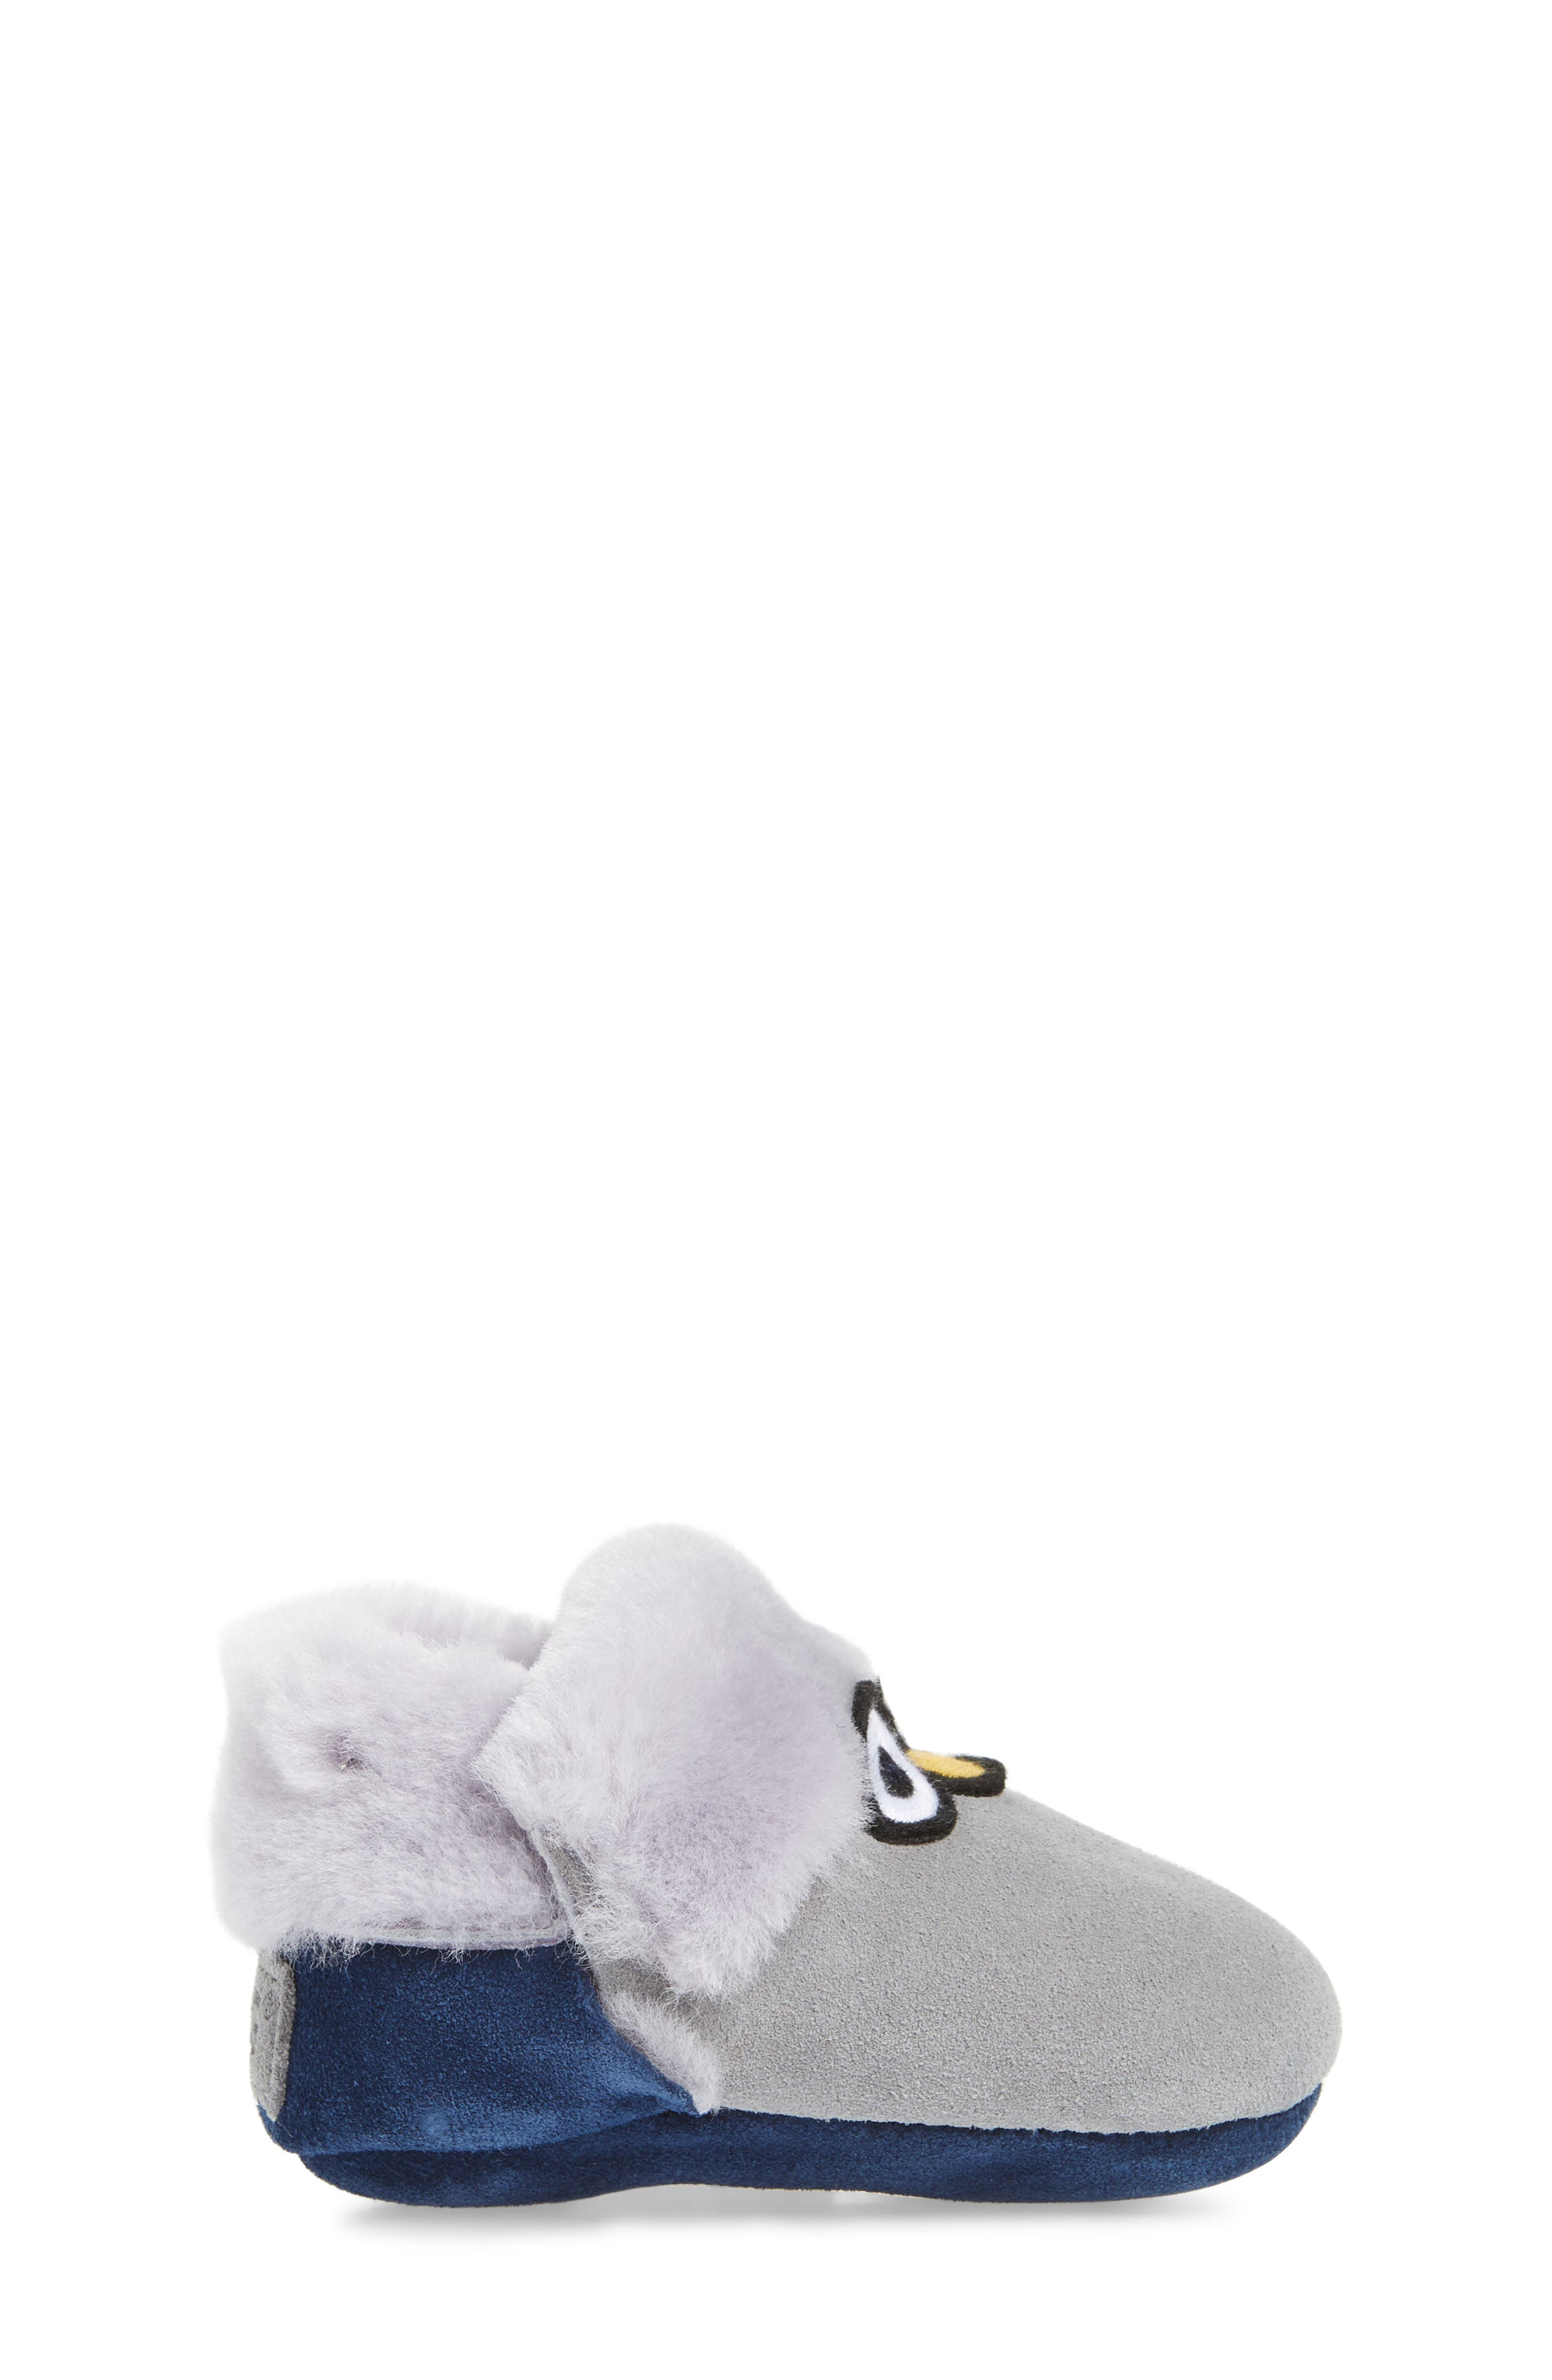 Zippie Genuine Shearling Bootie,                             Alternate thumbnail 3, color,                             Navy/ Seal